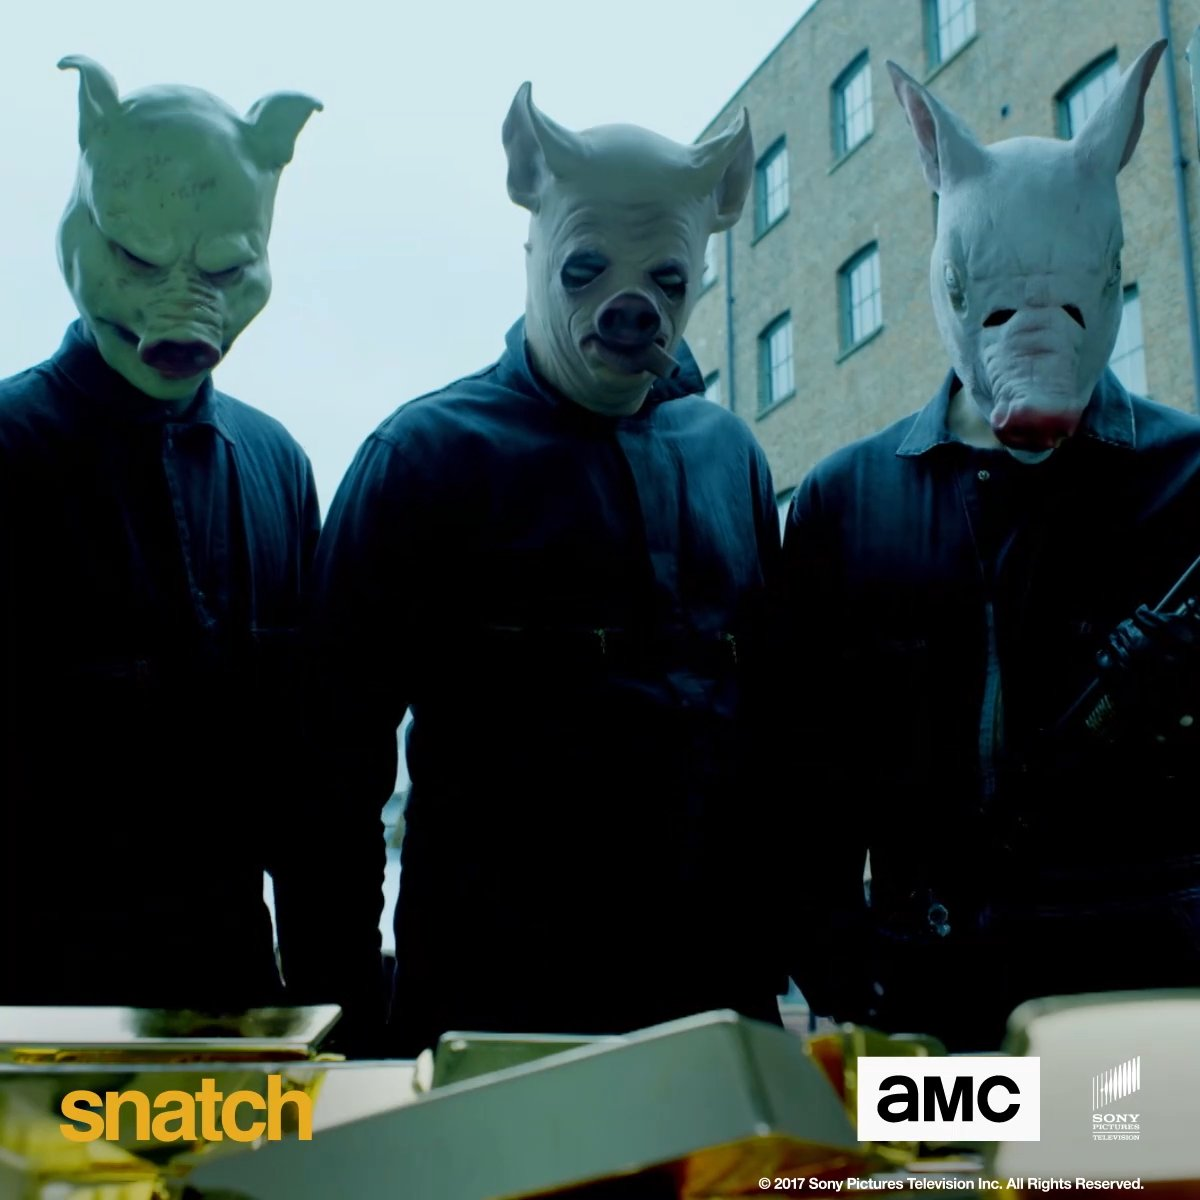 Happier than pigs in mud! 🐷 Crime-comedy series #Snatch starts tomorrow at 10pm on AMC.